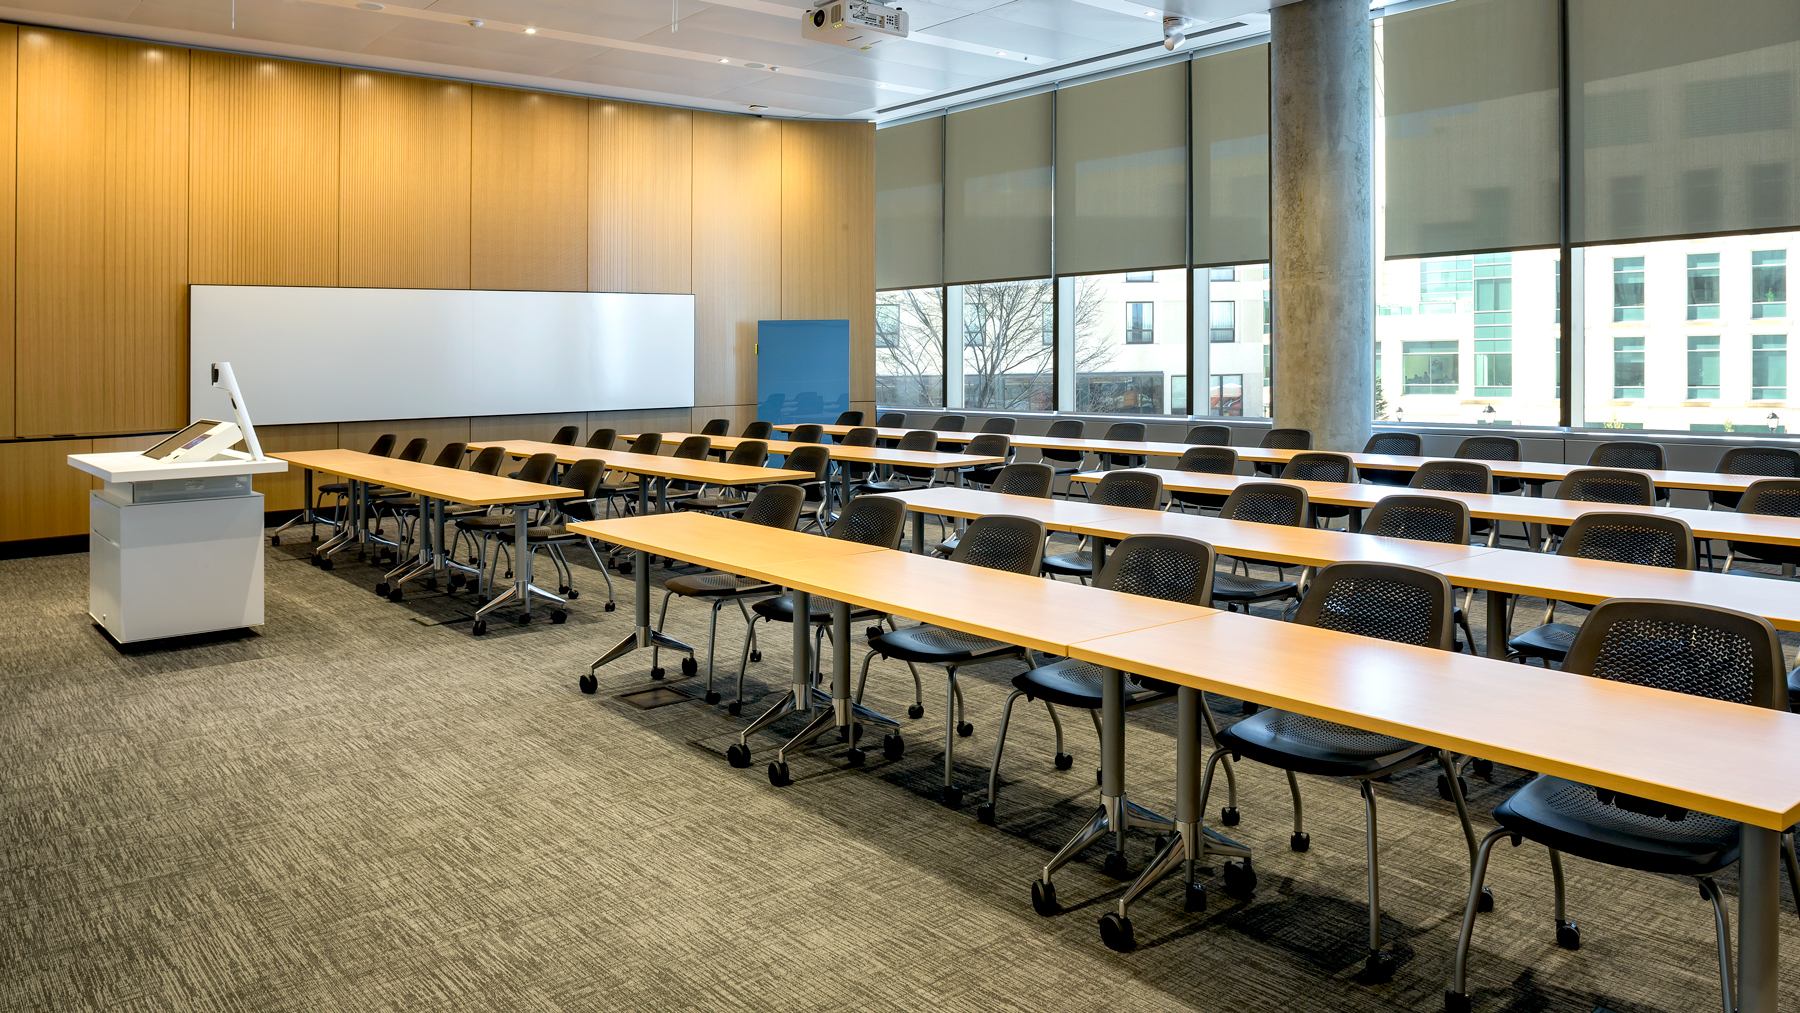 Rm 2110 Interactive learning Center